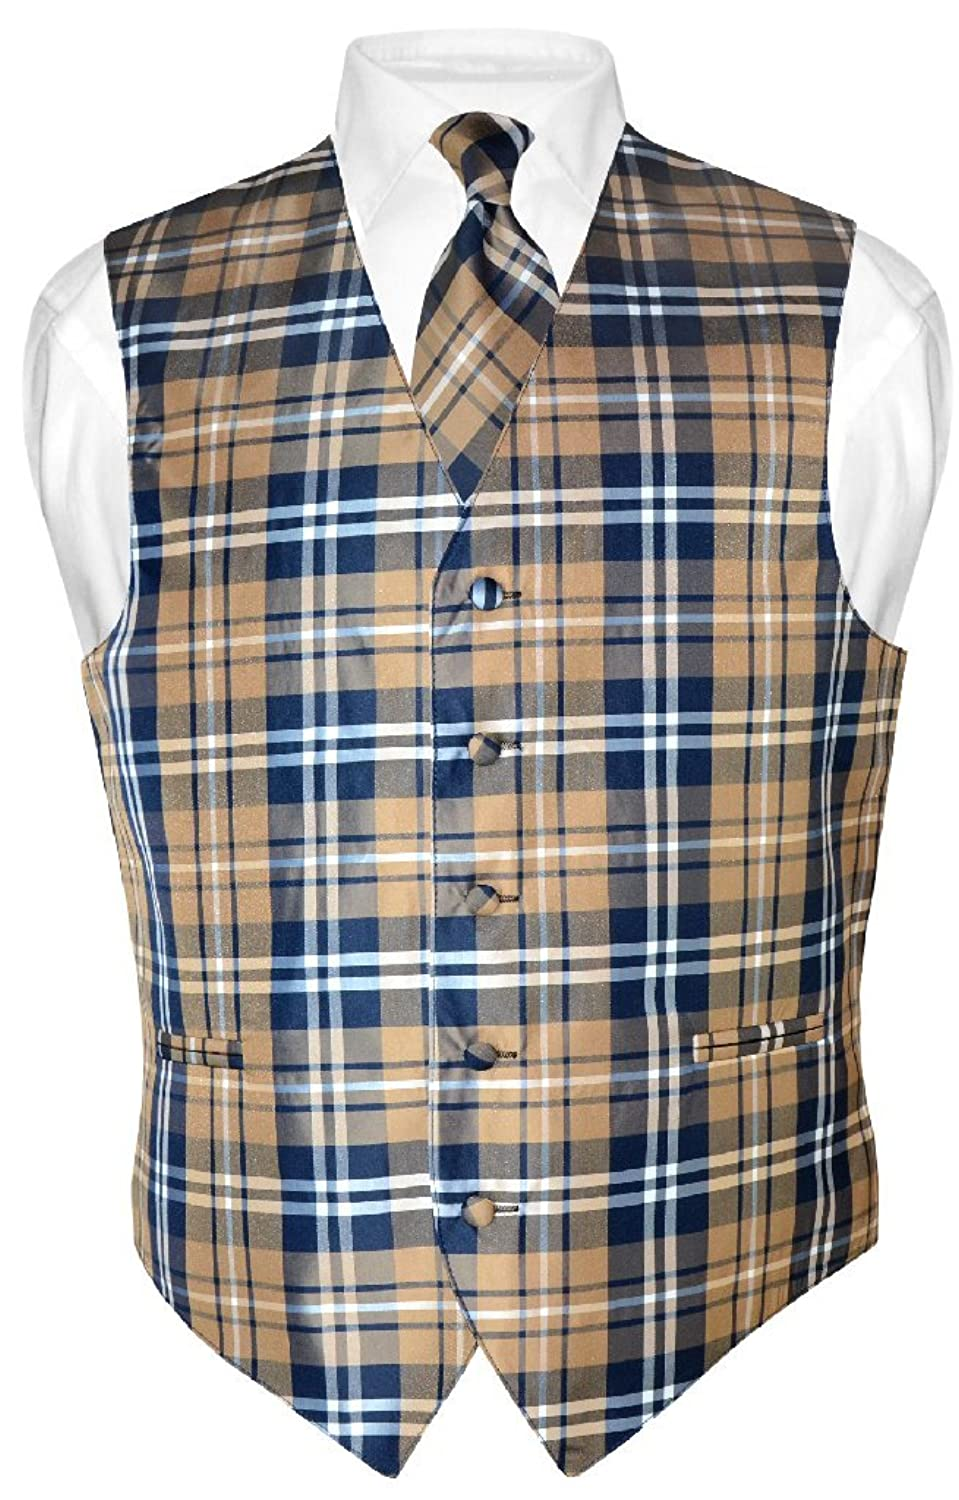 Men's Vintage Vests, Sweater Vests Mens Plaid Design Dress Vest & NeckTie Navy Brown White Neck Tie Set $26.99 AT vintagedancer.com